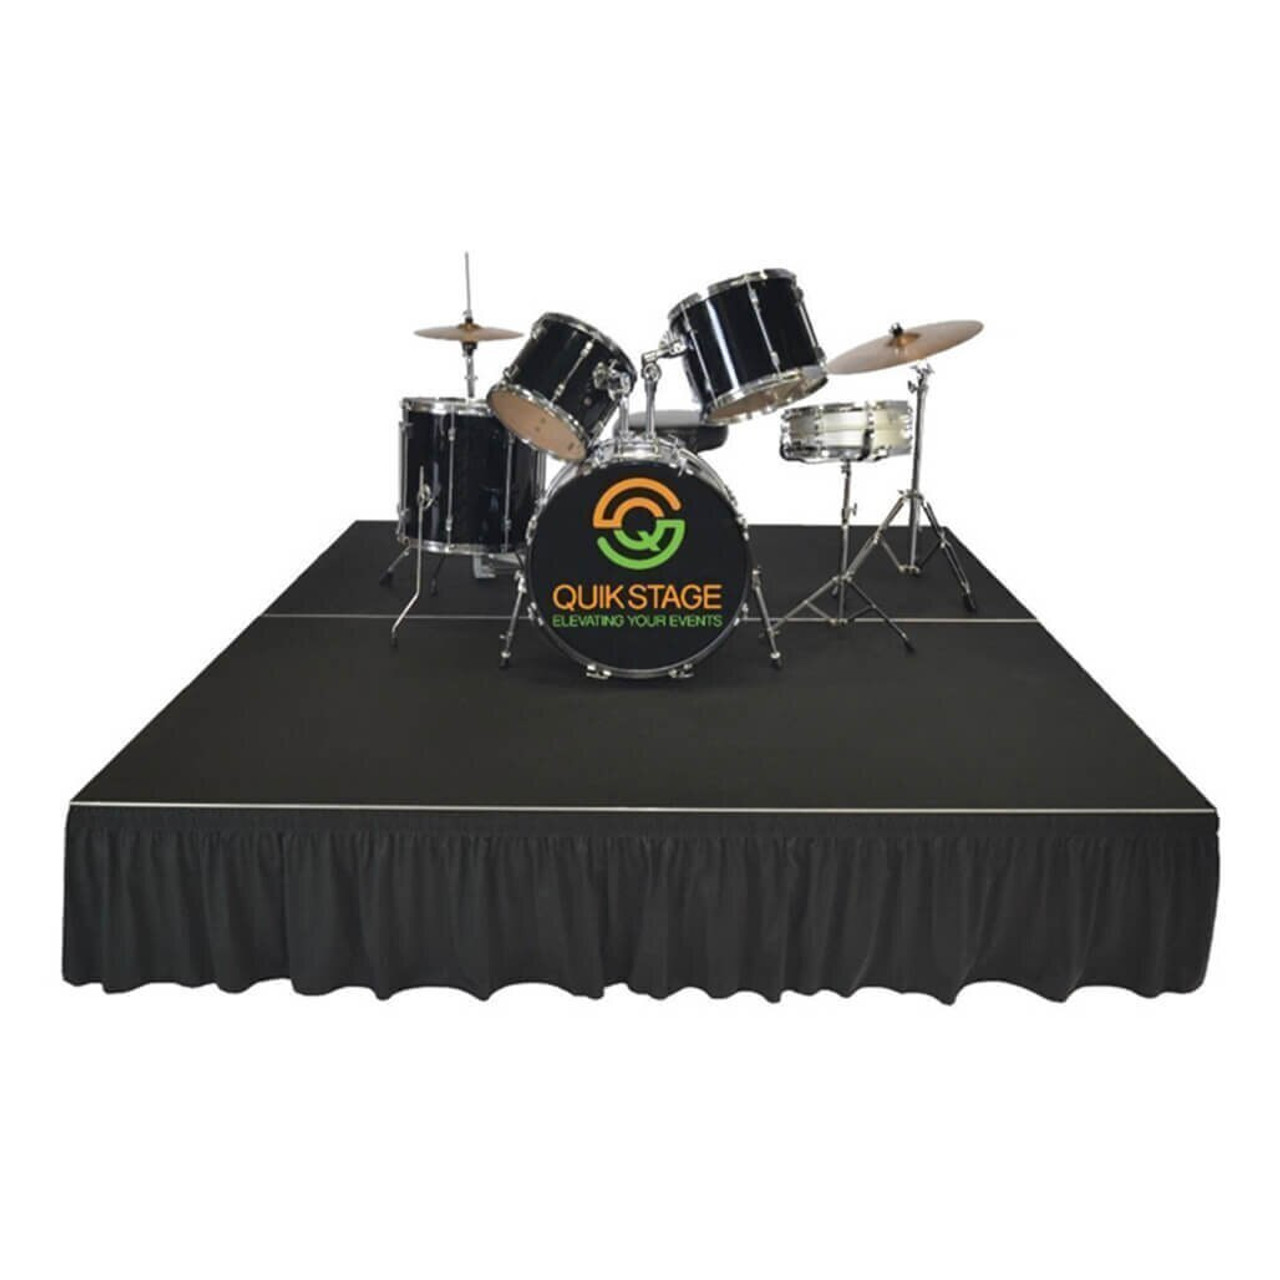 Top reviewed Quik Stage 4' x 28' High Portable Stage Package with Black Polyvinyl Non-Skid Surface. Additional Heights and Surfaces Available - Drum Riser with skirting